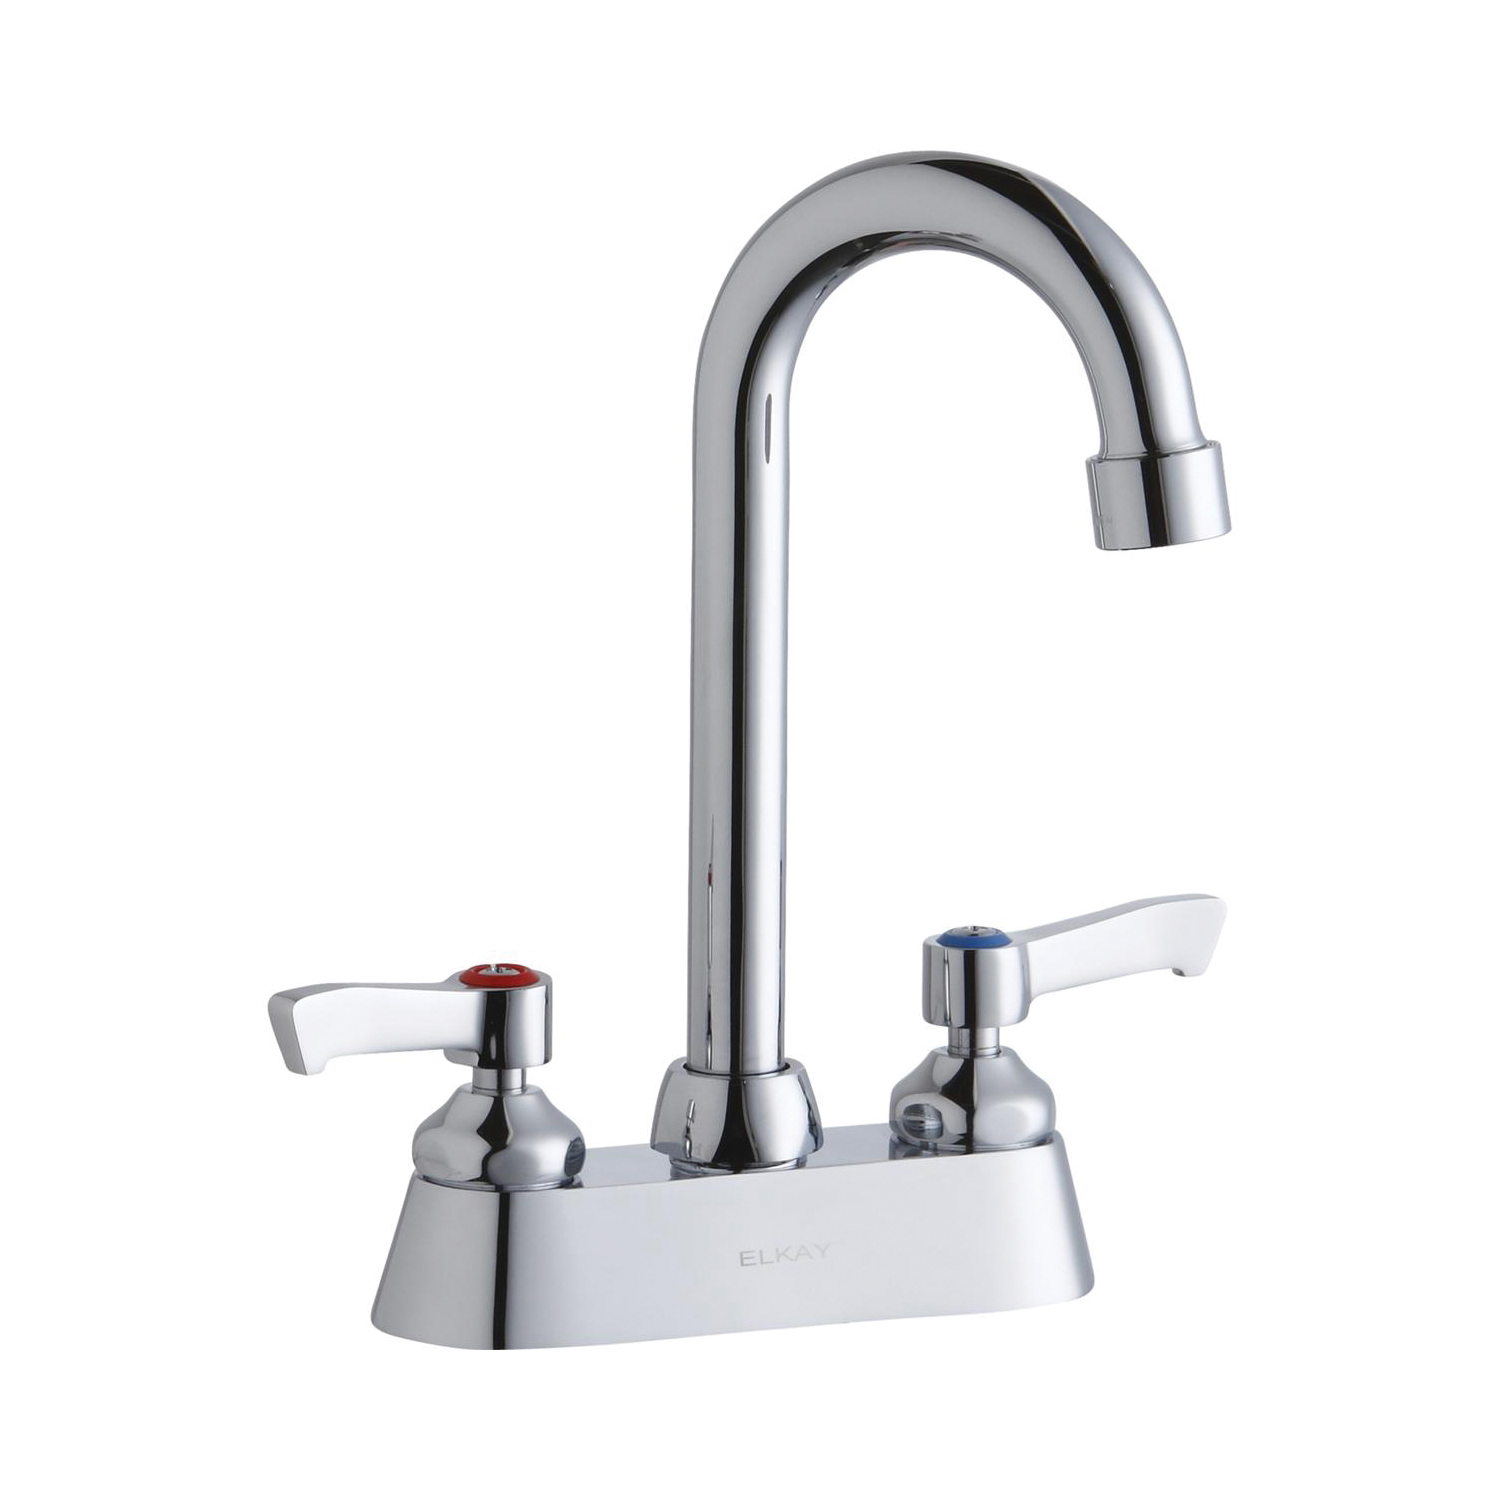 Elkay® LK406GN04L2 Centerset Bathroom Faucet, Chrome Plated, 2 Handles, 1.5 gpm